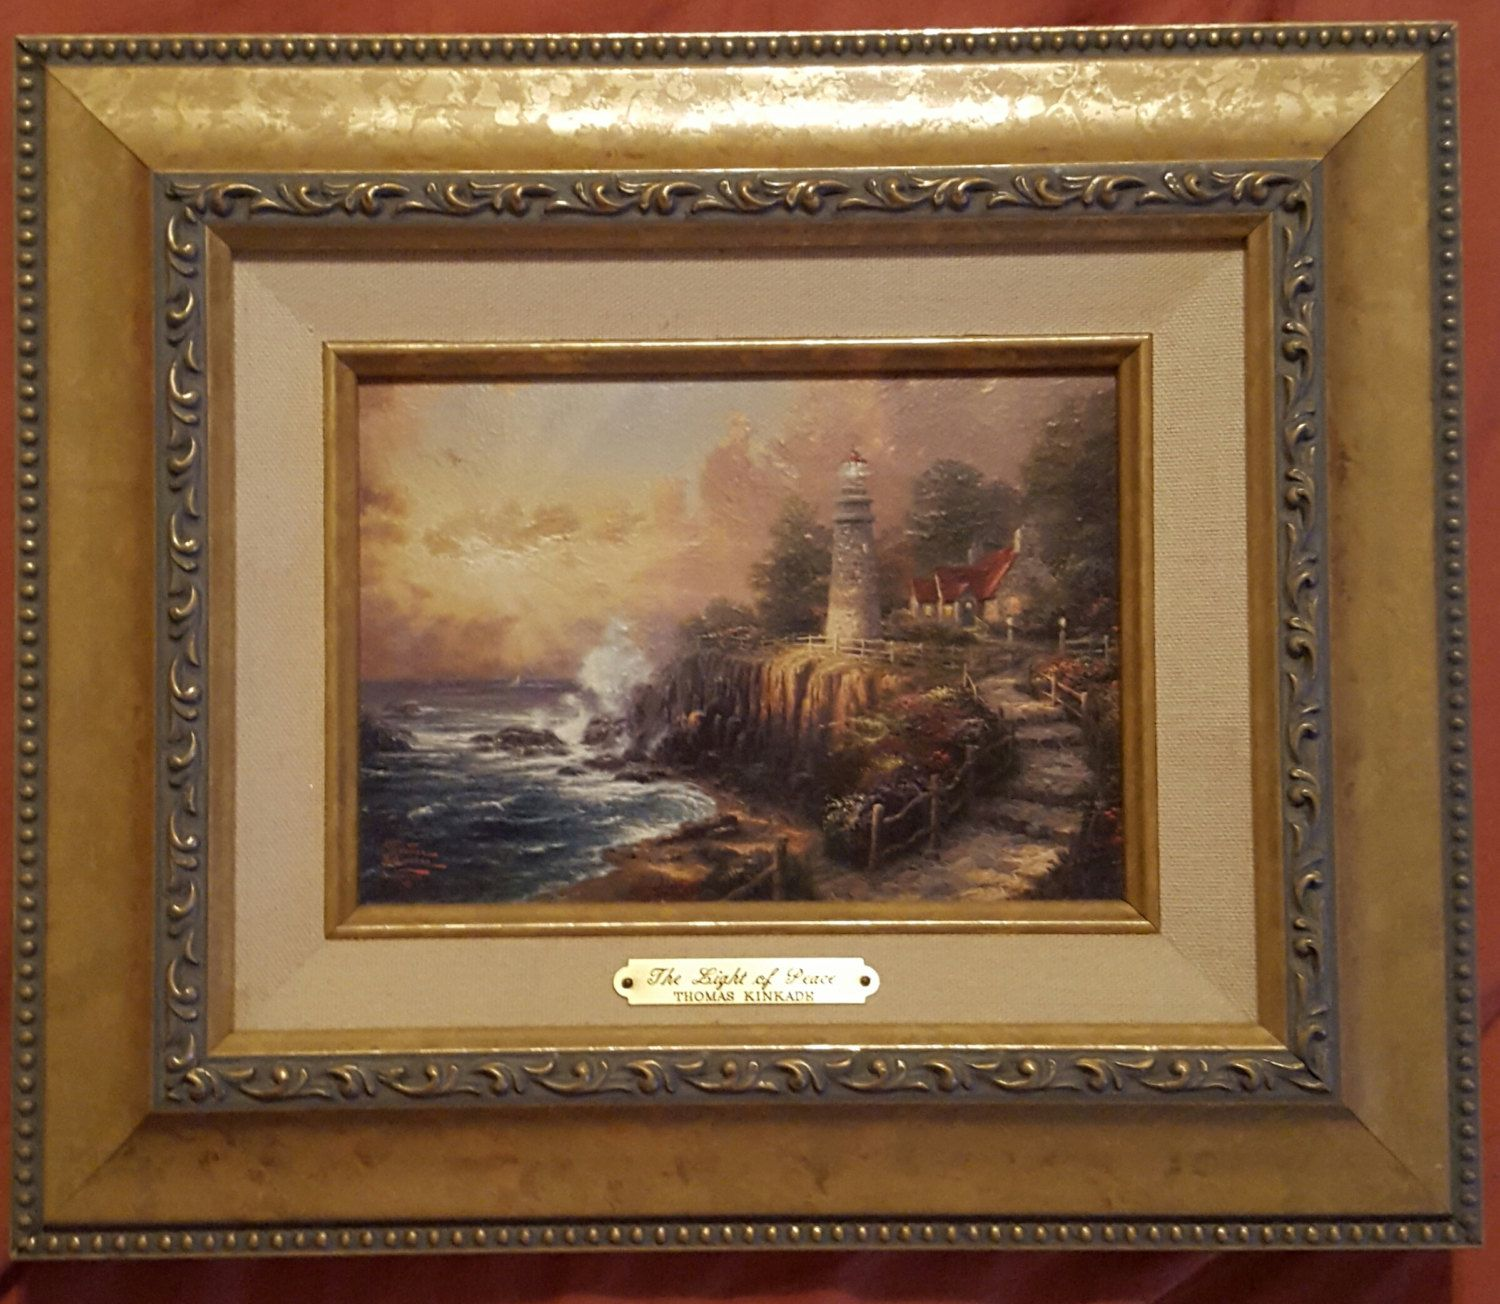 Thomas kinkade brushworks collection light of peace with thomas kinkade brushworks collection light of peace with certificate of authenticity 1betcityfo Images